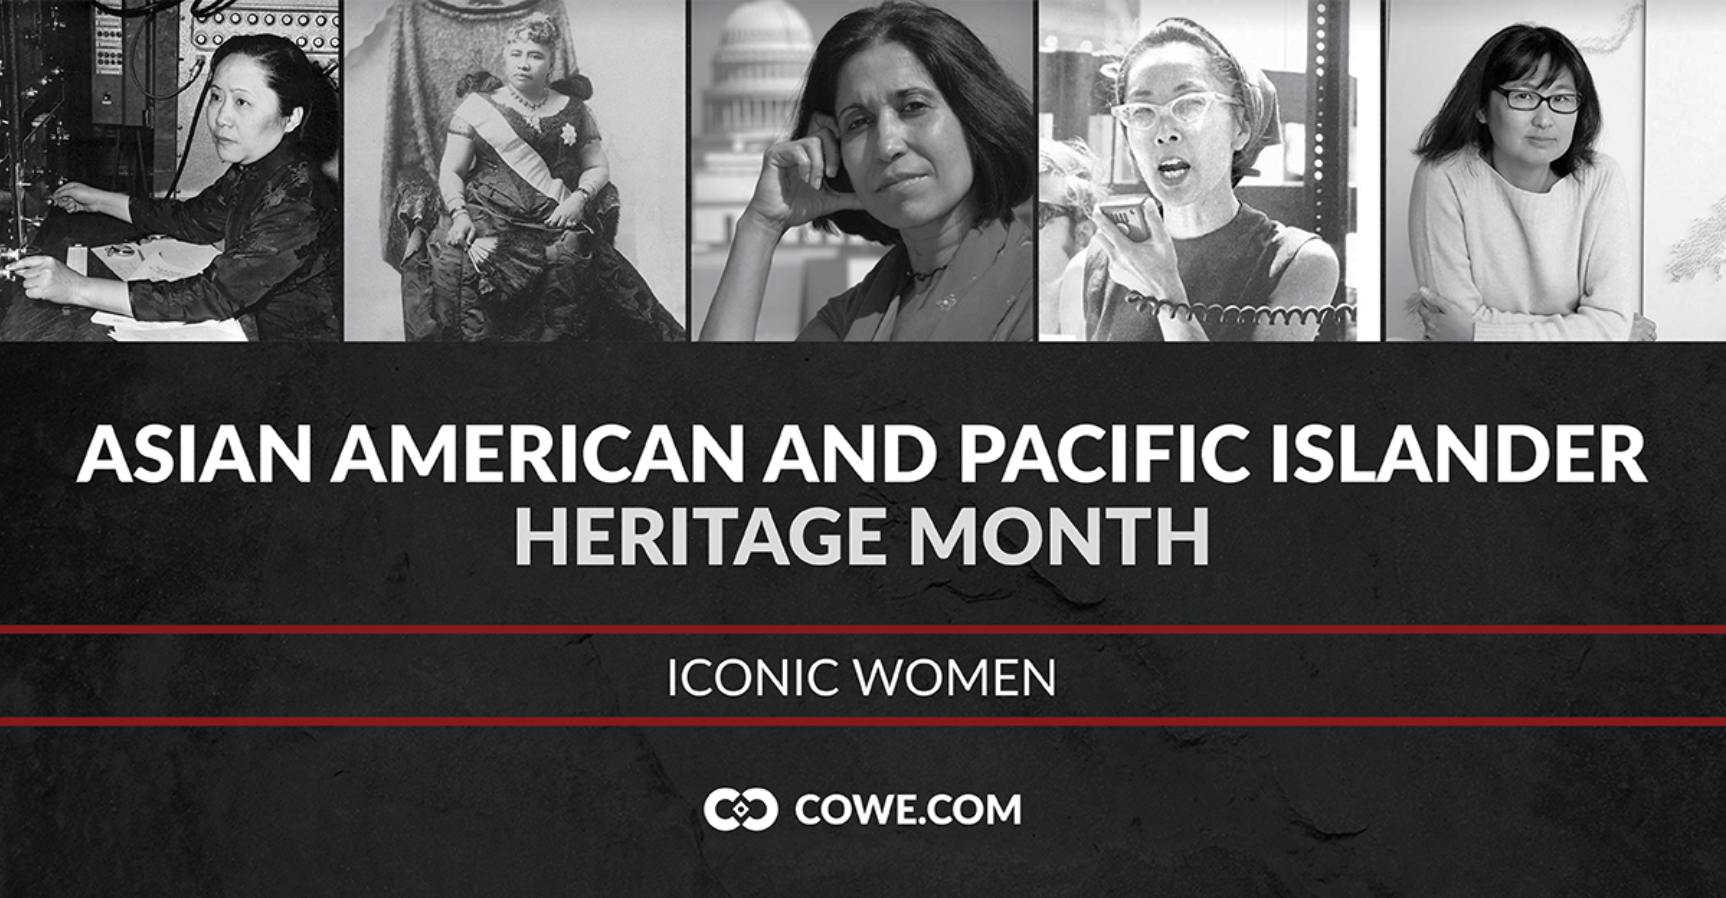 American and Pacific Islander Heritage Month